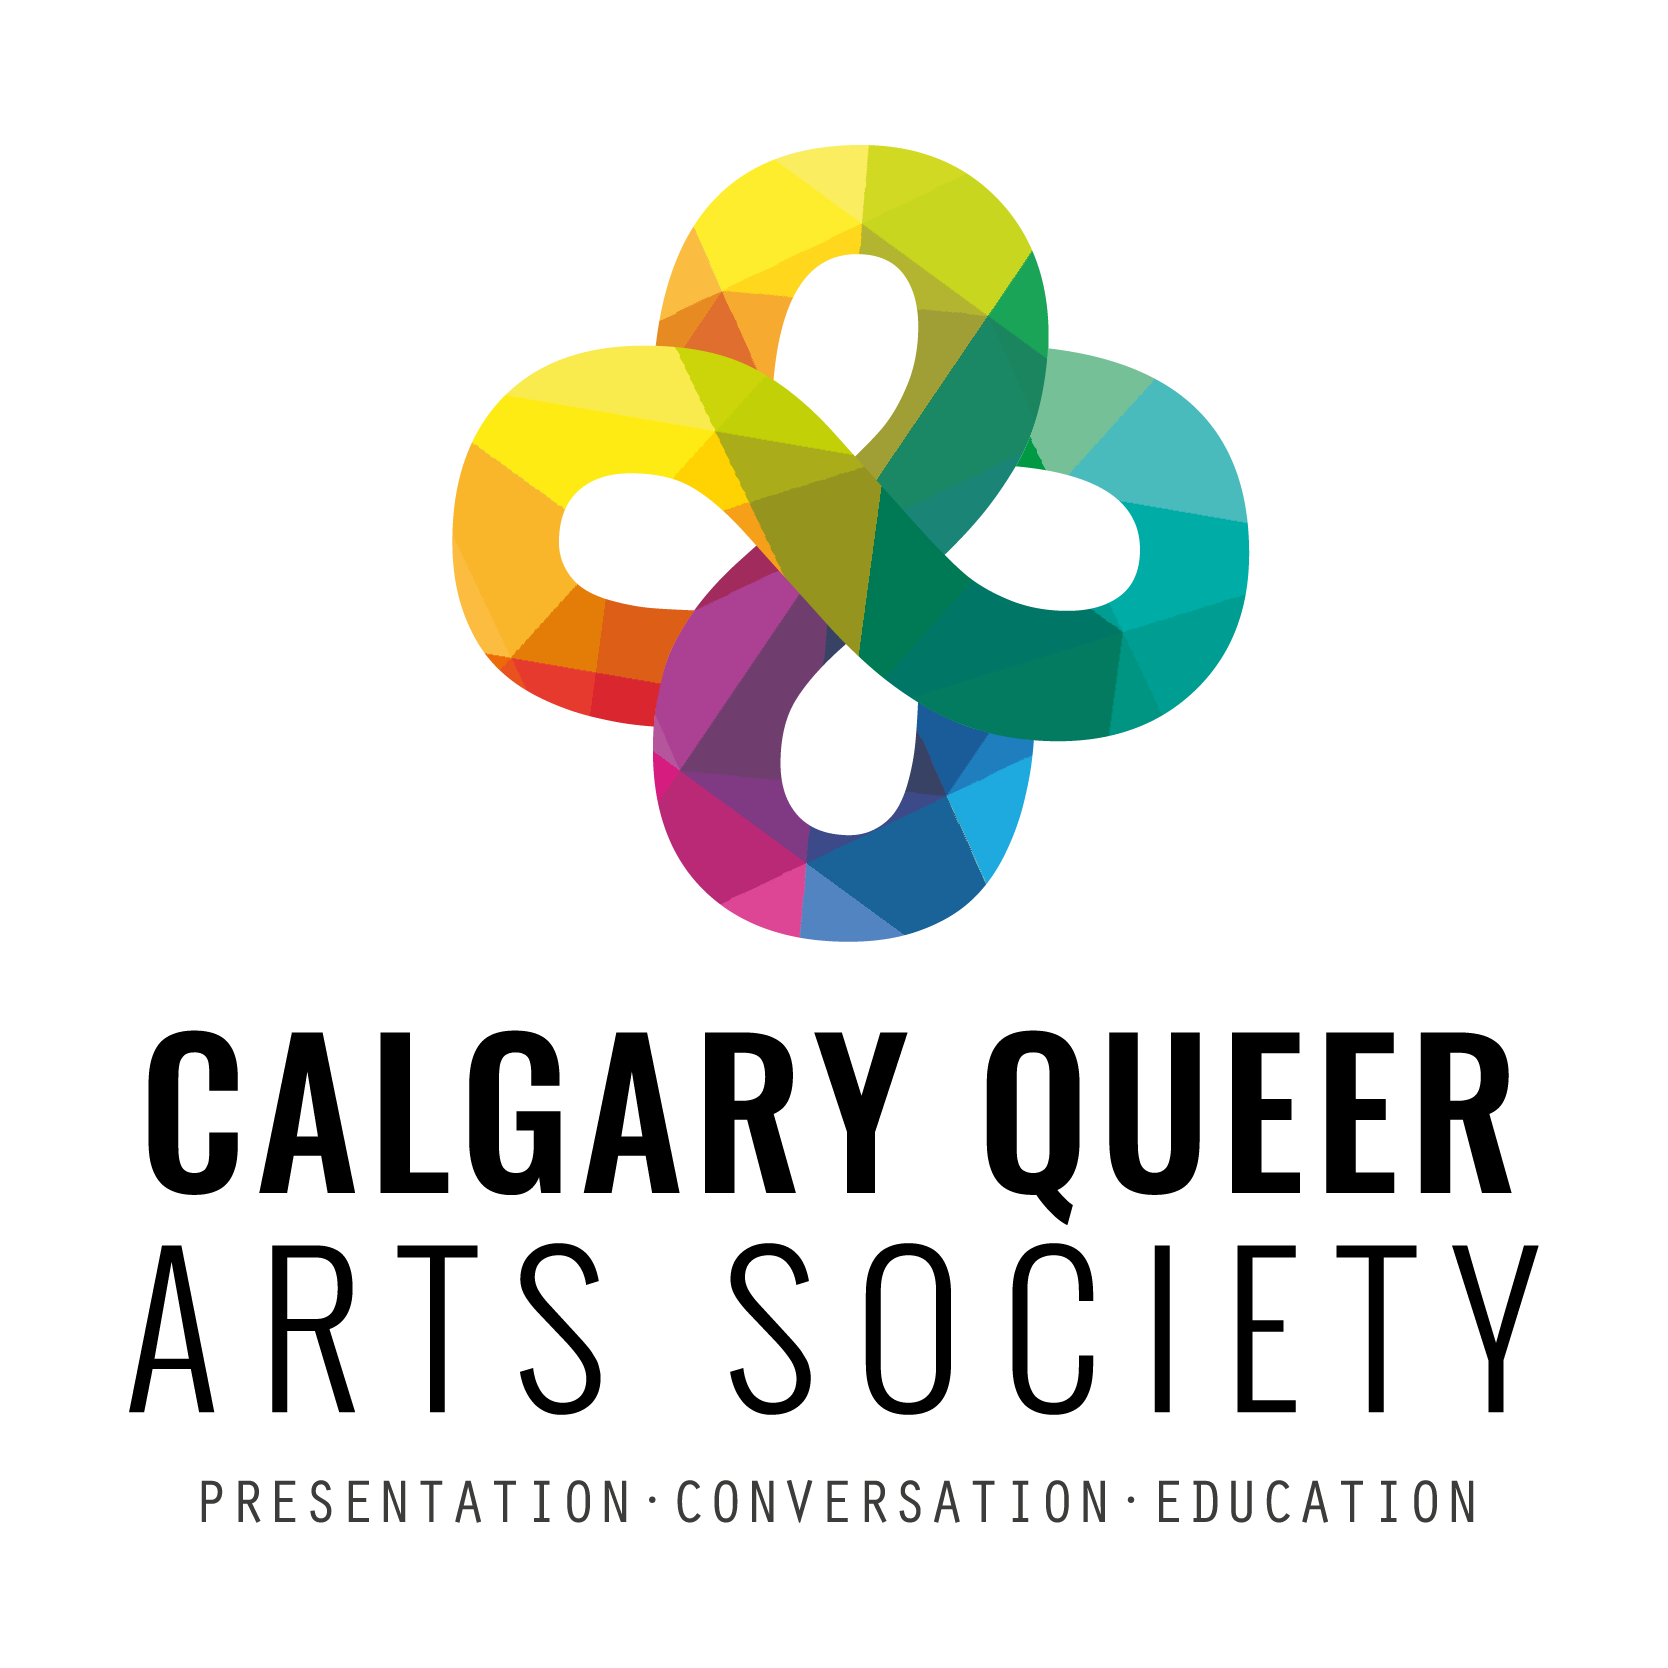 In 2018, Fairy Tales Presentation Society became Calgary Queer Arts Society. - Since our humble beginnings, we have experienced tremendous growth and our organization has evolved to become so much more than a queer film festival. In order to provide a more holistic representation of who we are today, we felt that it was time to introduce a new parent brand. We are ready for the next chapter as Calgary Queer Arts Society, and are confident that this shift will help to grow our organization, strengthen our programs and extend our impact across the province.